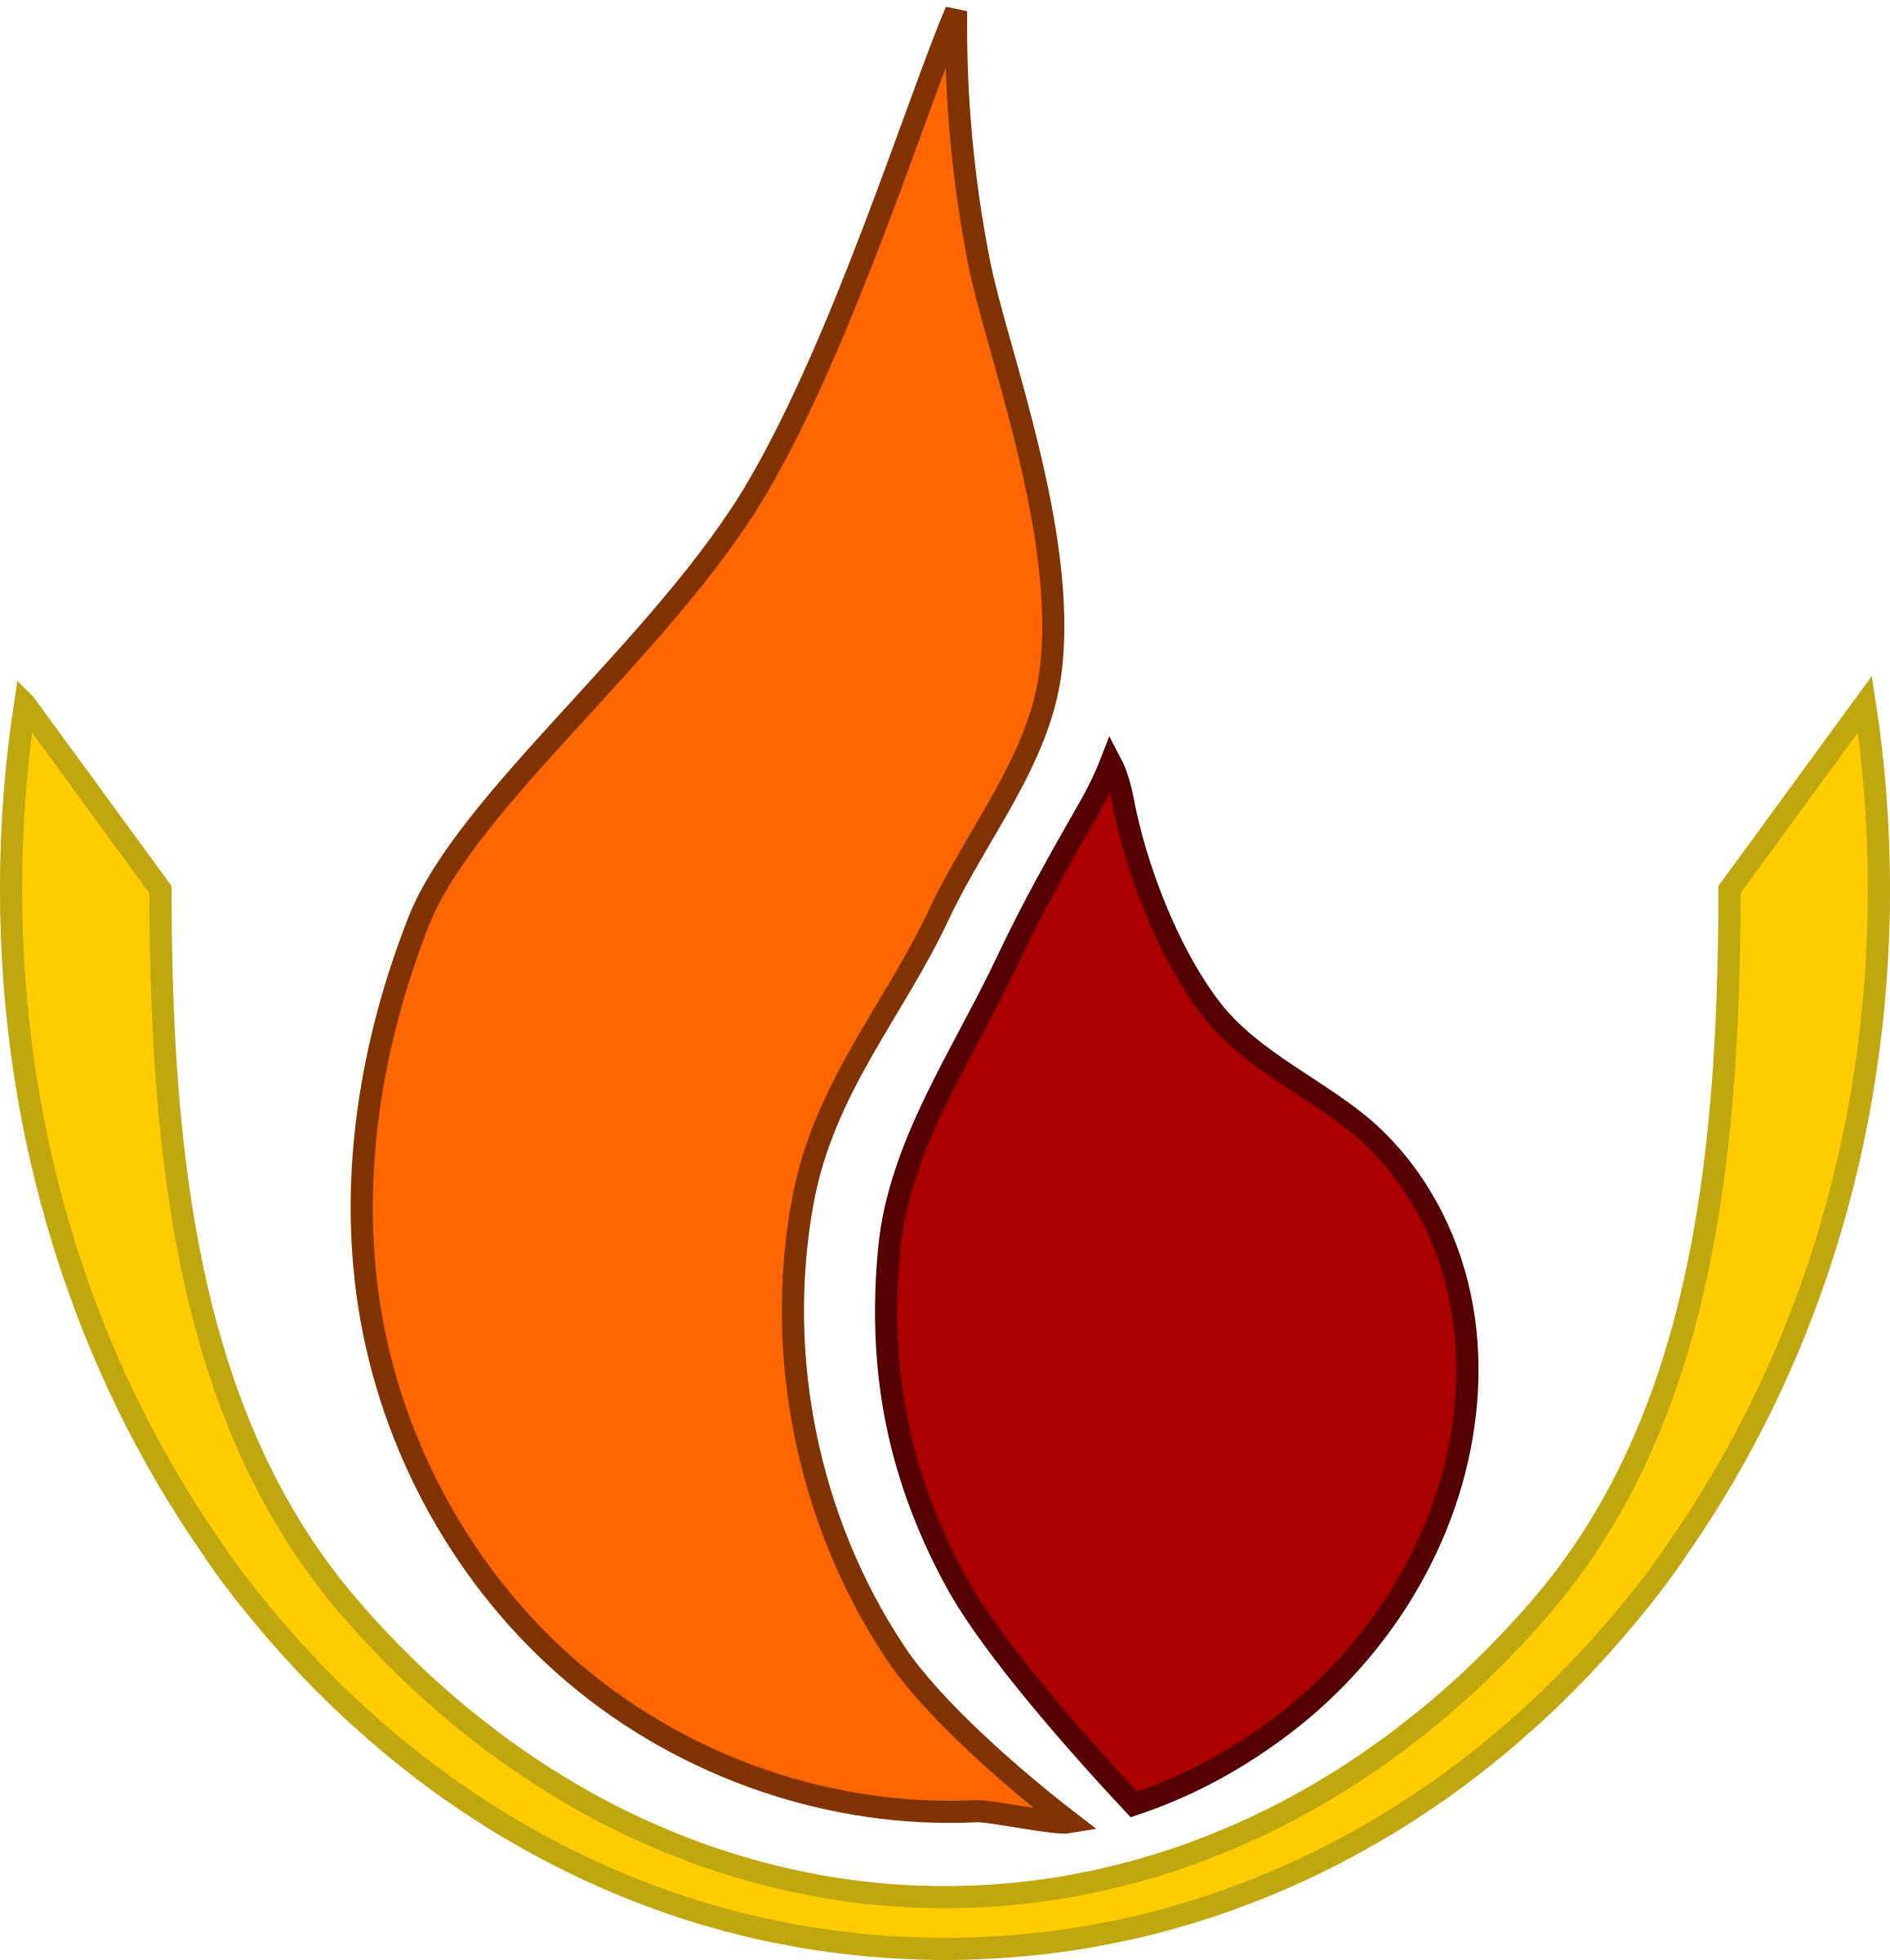 Flame logo by dear_theophilus